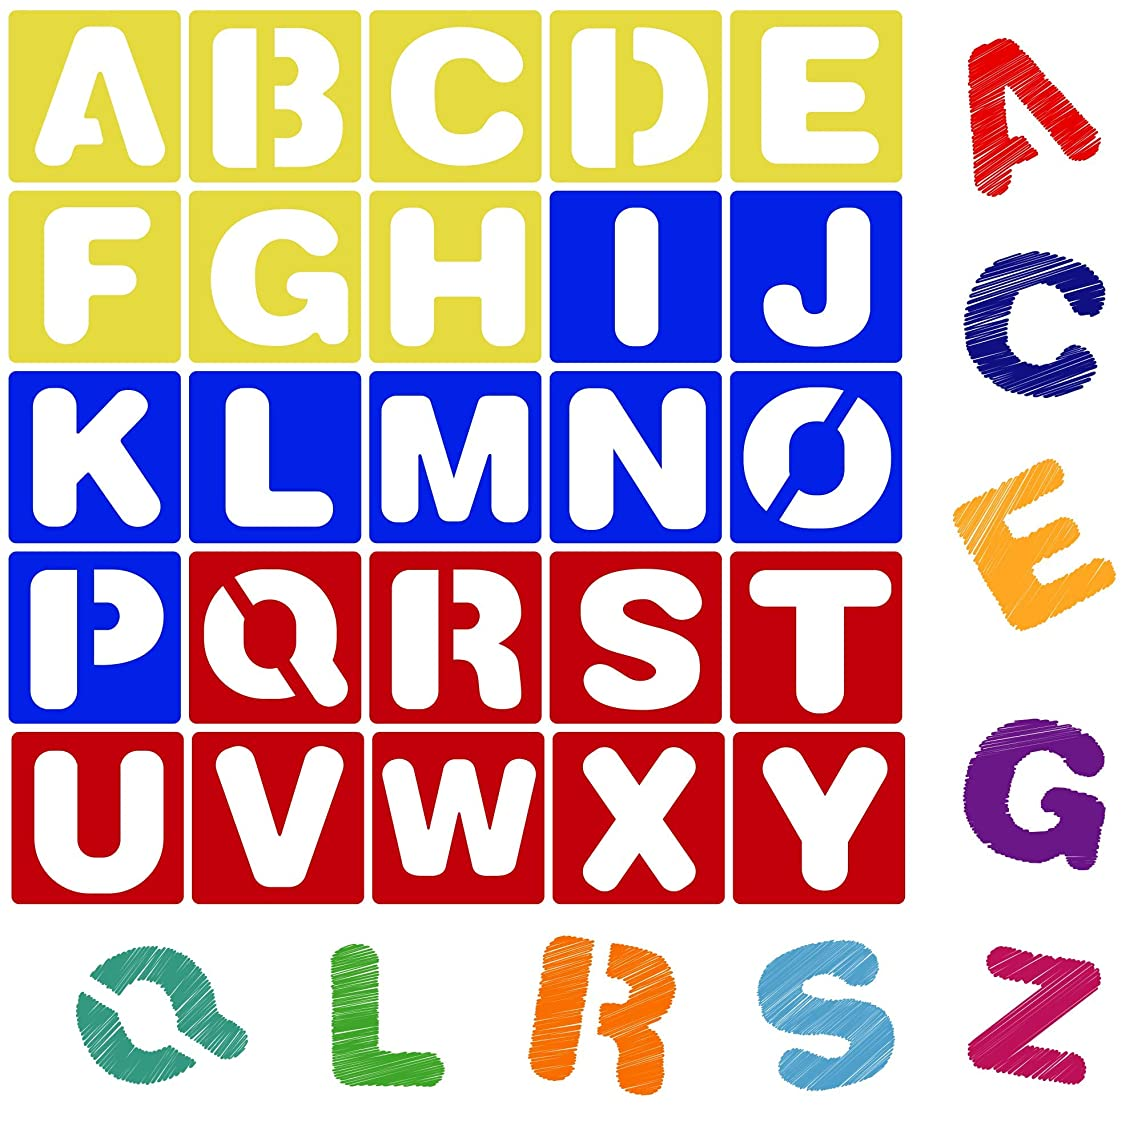 Karty Alphabet Letter Stencil Set for Kids and Adults | Painting, Lettering and Drawing Templates | Large Plastic ABC Stencils for Protest Posters, Arts and Crafts Projects (4 Inch)